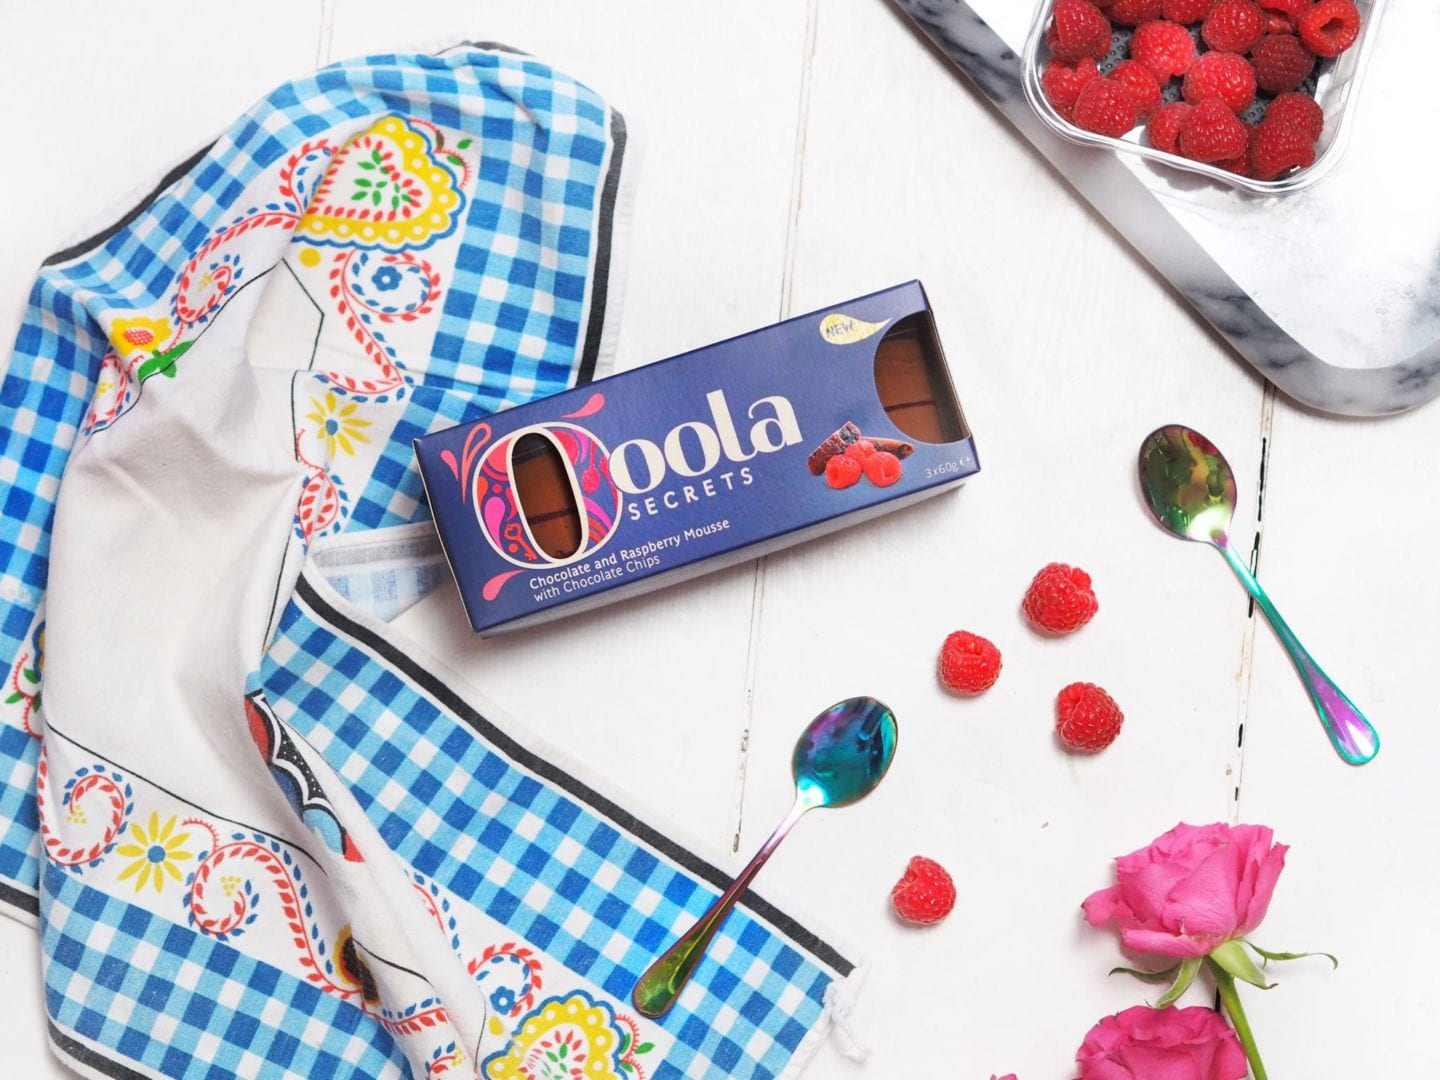 Ooola Secrets Treats box